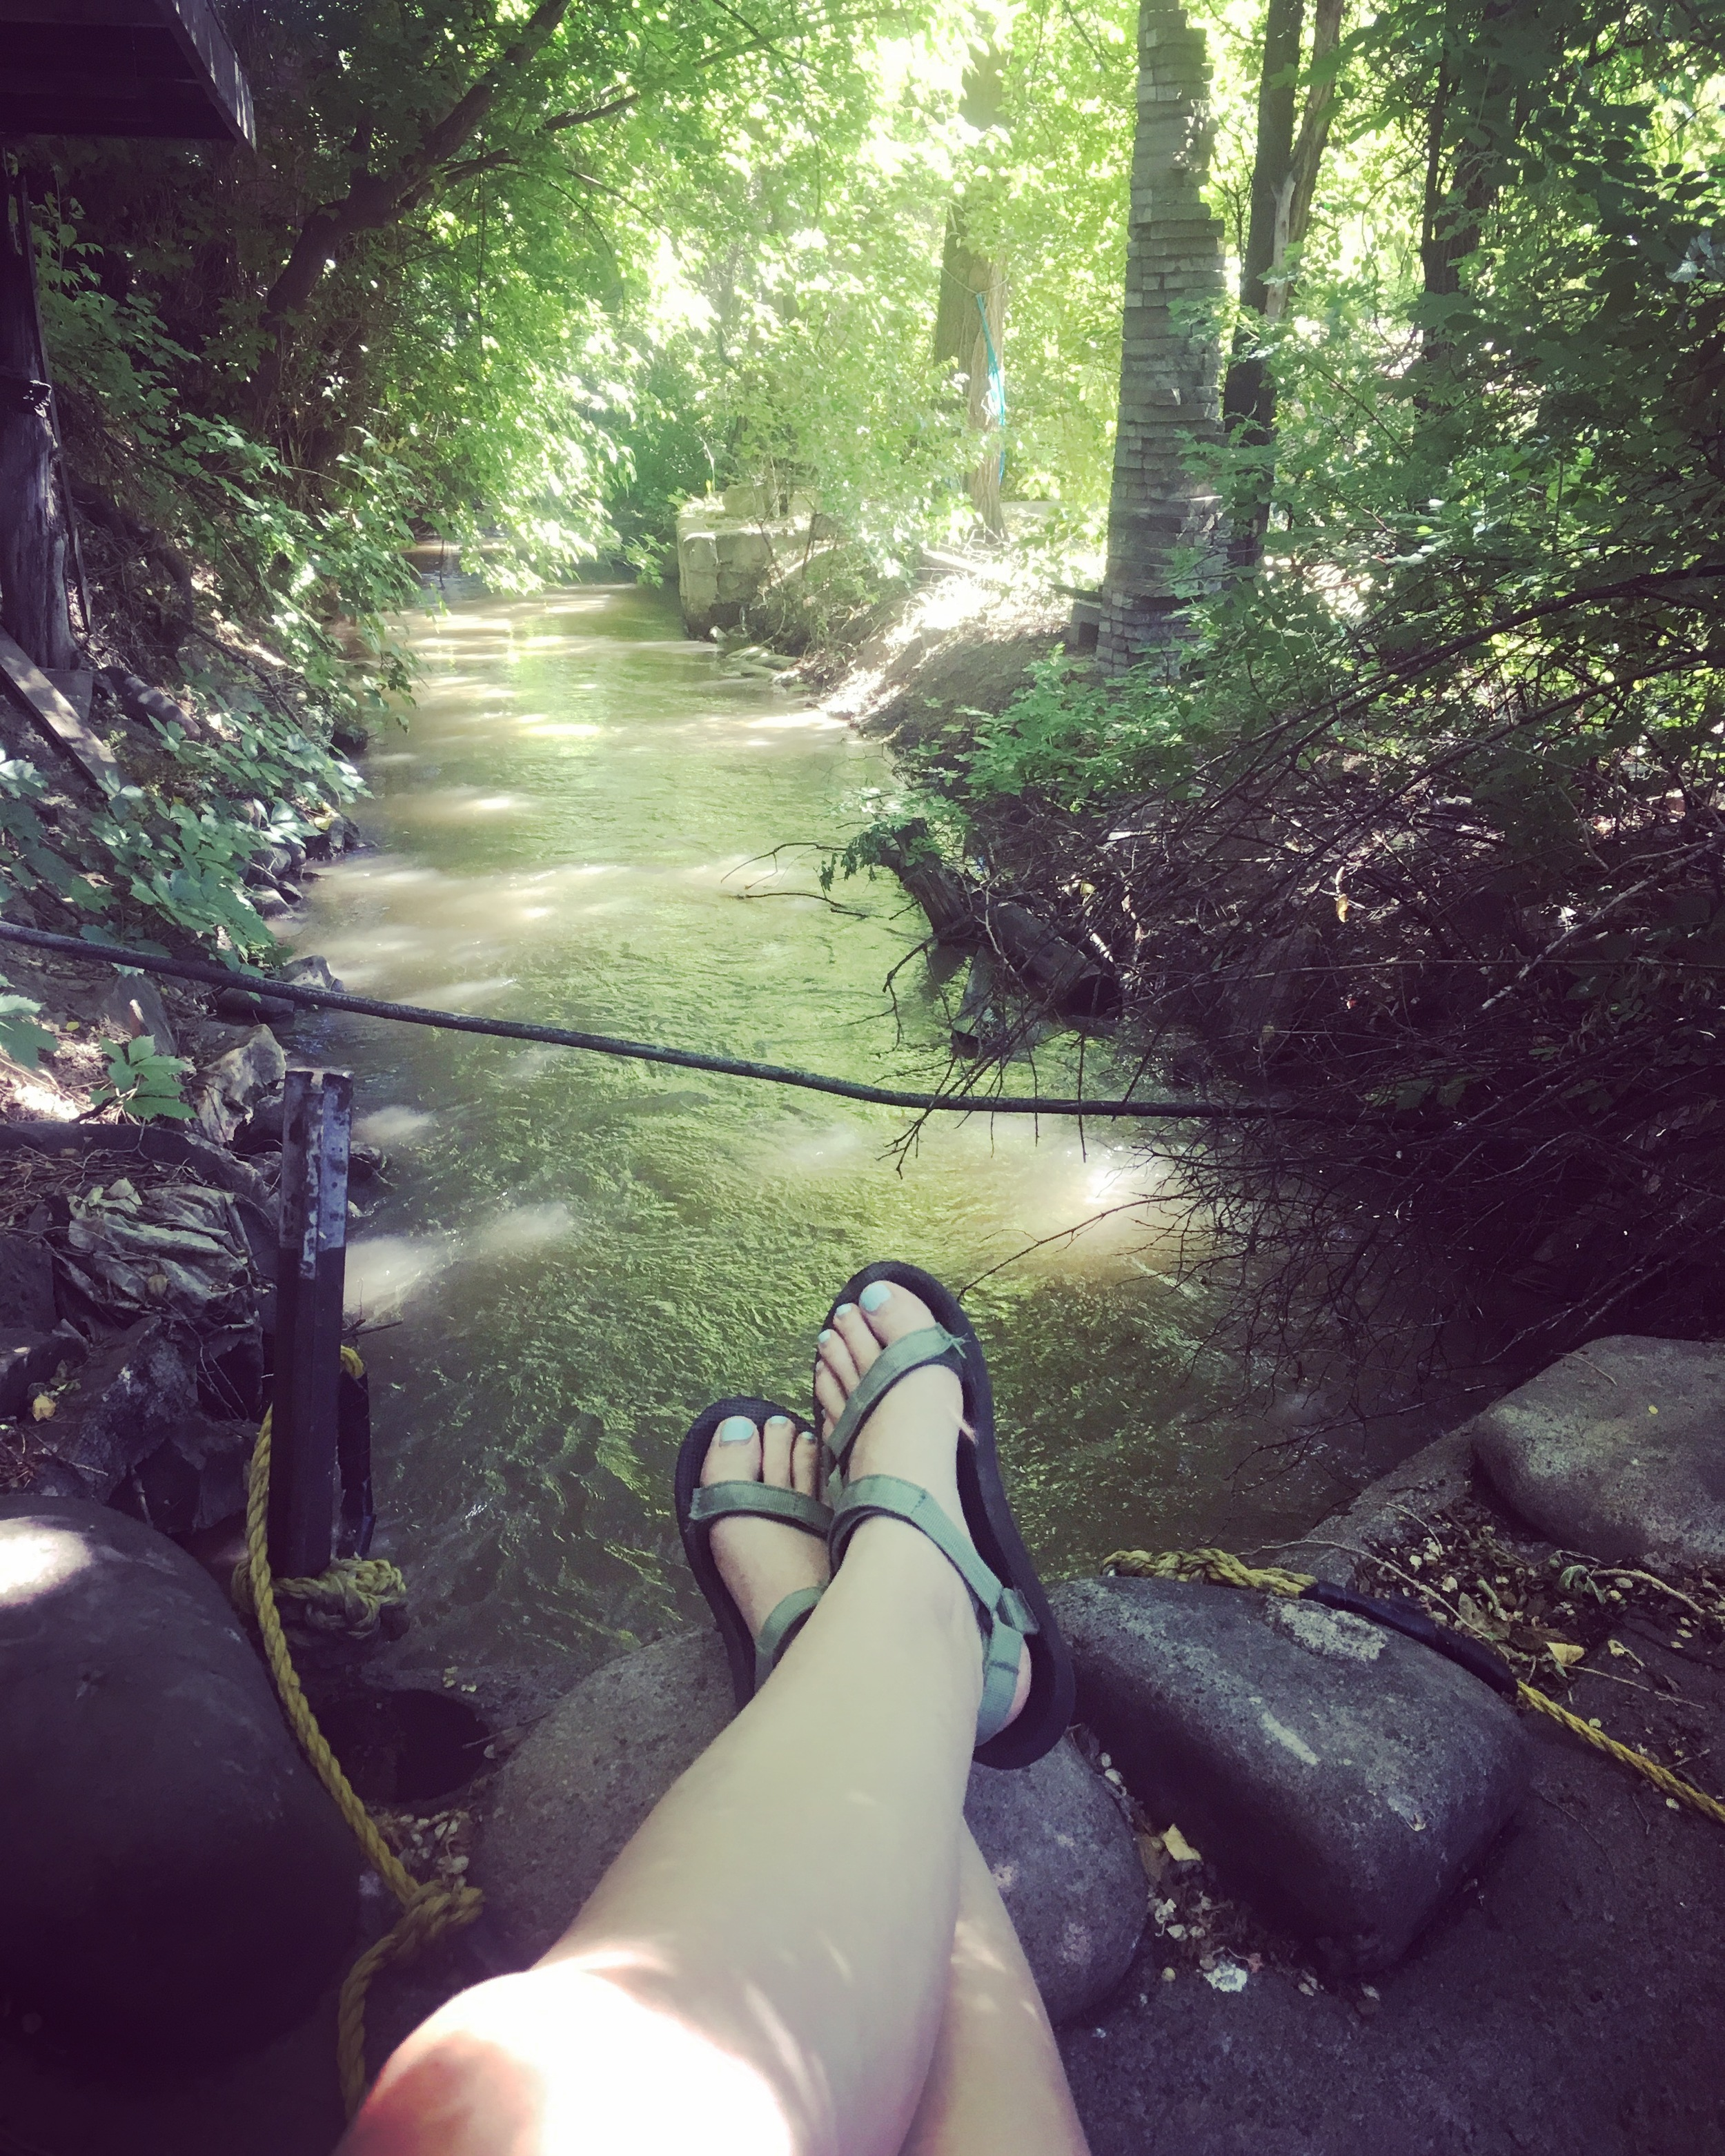 """Affectionately dubbed """"the ditch,"""" this little mudbath creek runs behind Elsewhere. I've spent a few afternoons reading and writing here, under the shade. It's a peaceful spot."""